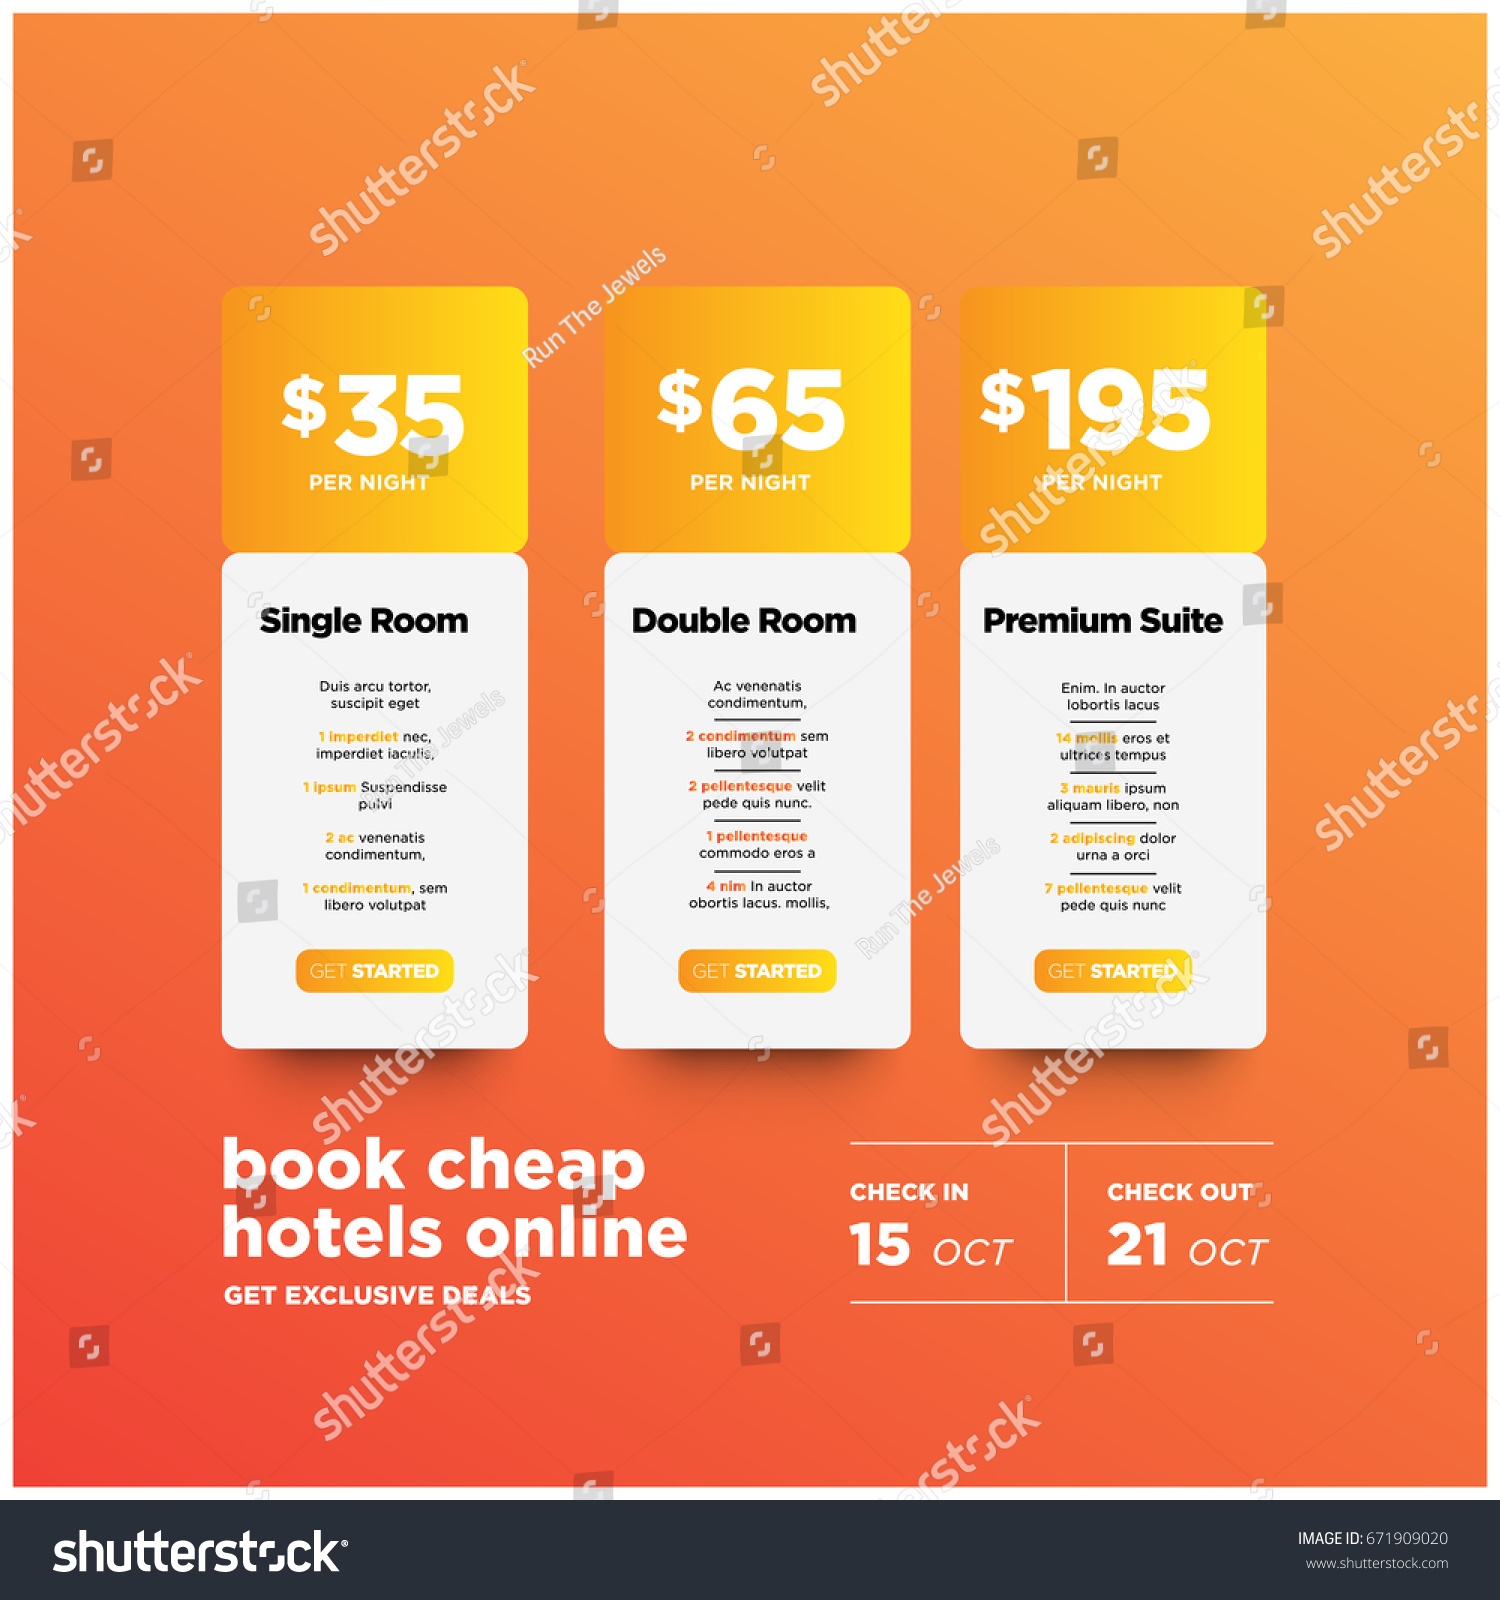 Book cheap hotels online ui design with different prices and packages